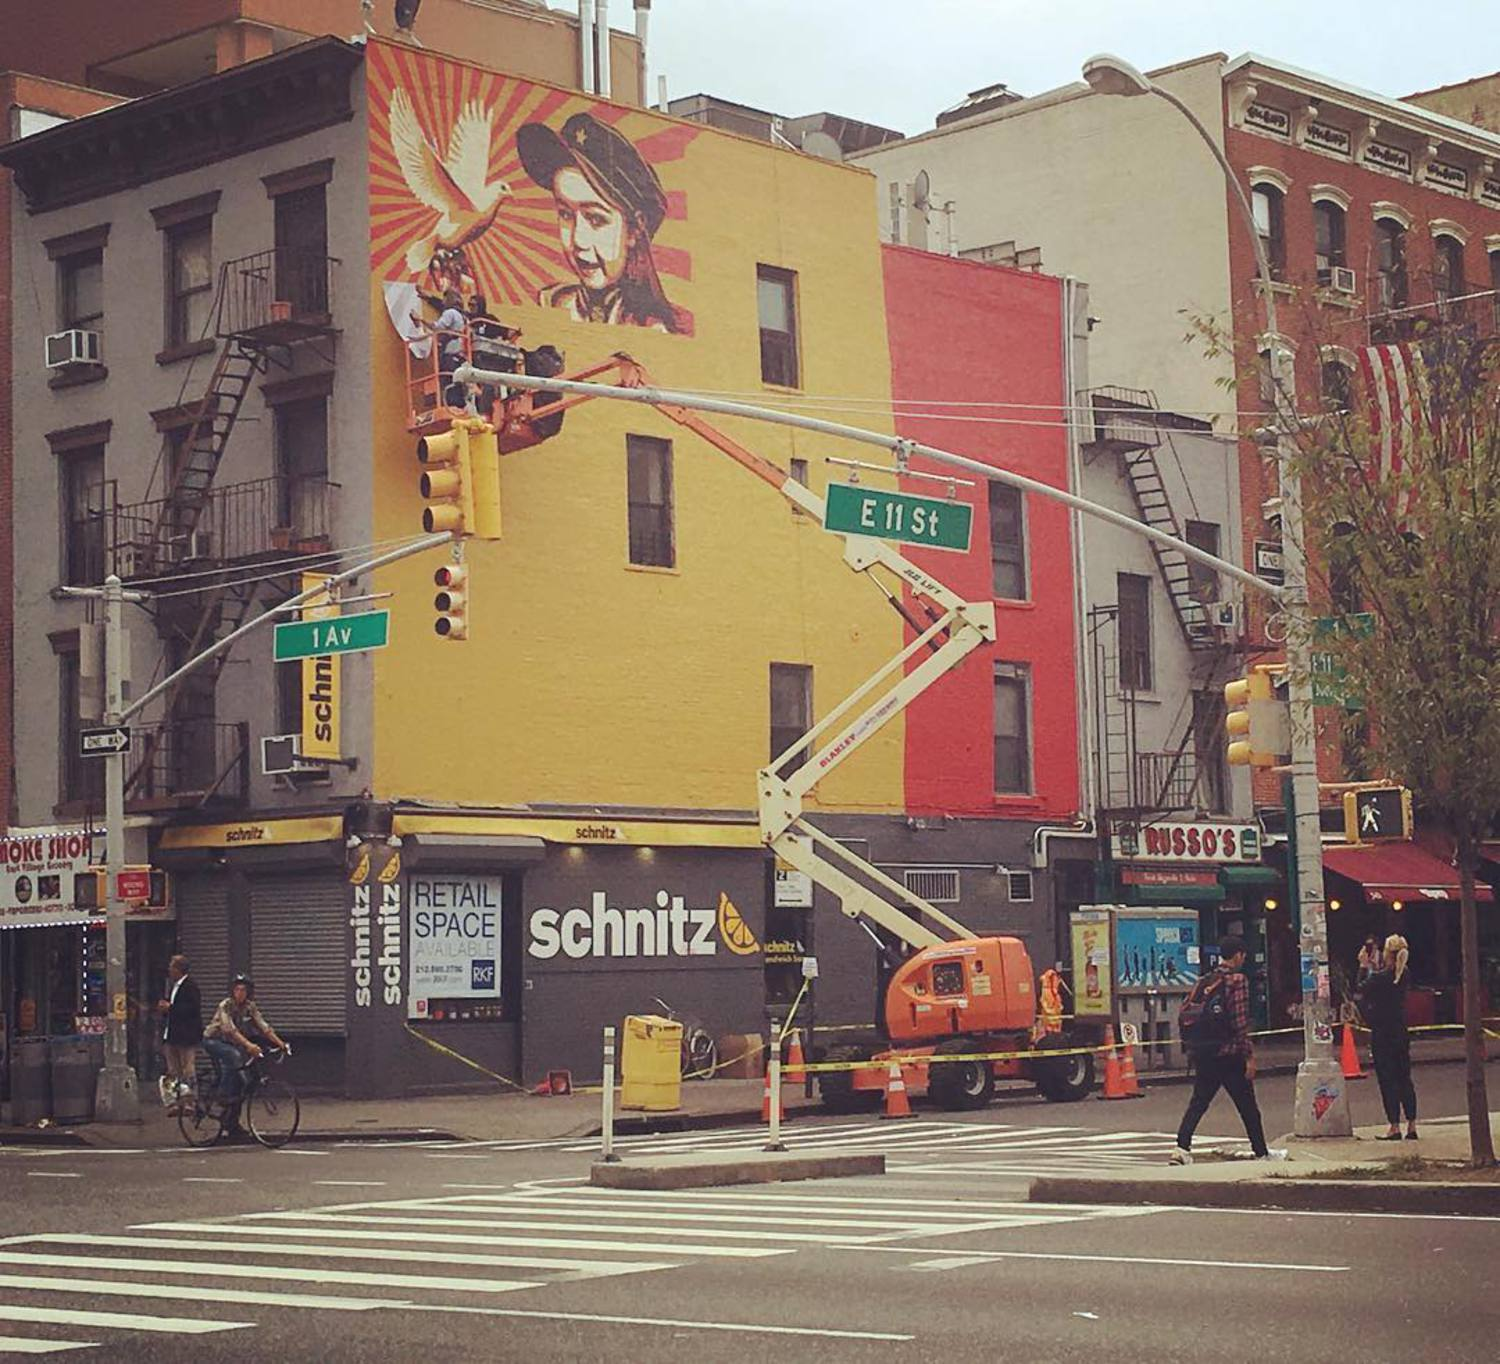 @obeygiant on E11th and 1st. #thelisaproject #obeygiant #shepardfairey #streetart #mural #nycstreetart #eastvillage #publicart @thelisaprojectnyc